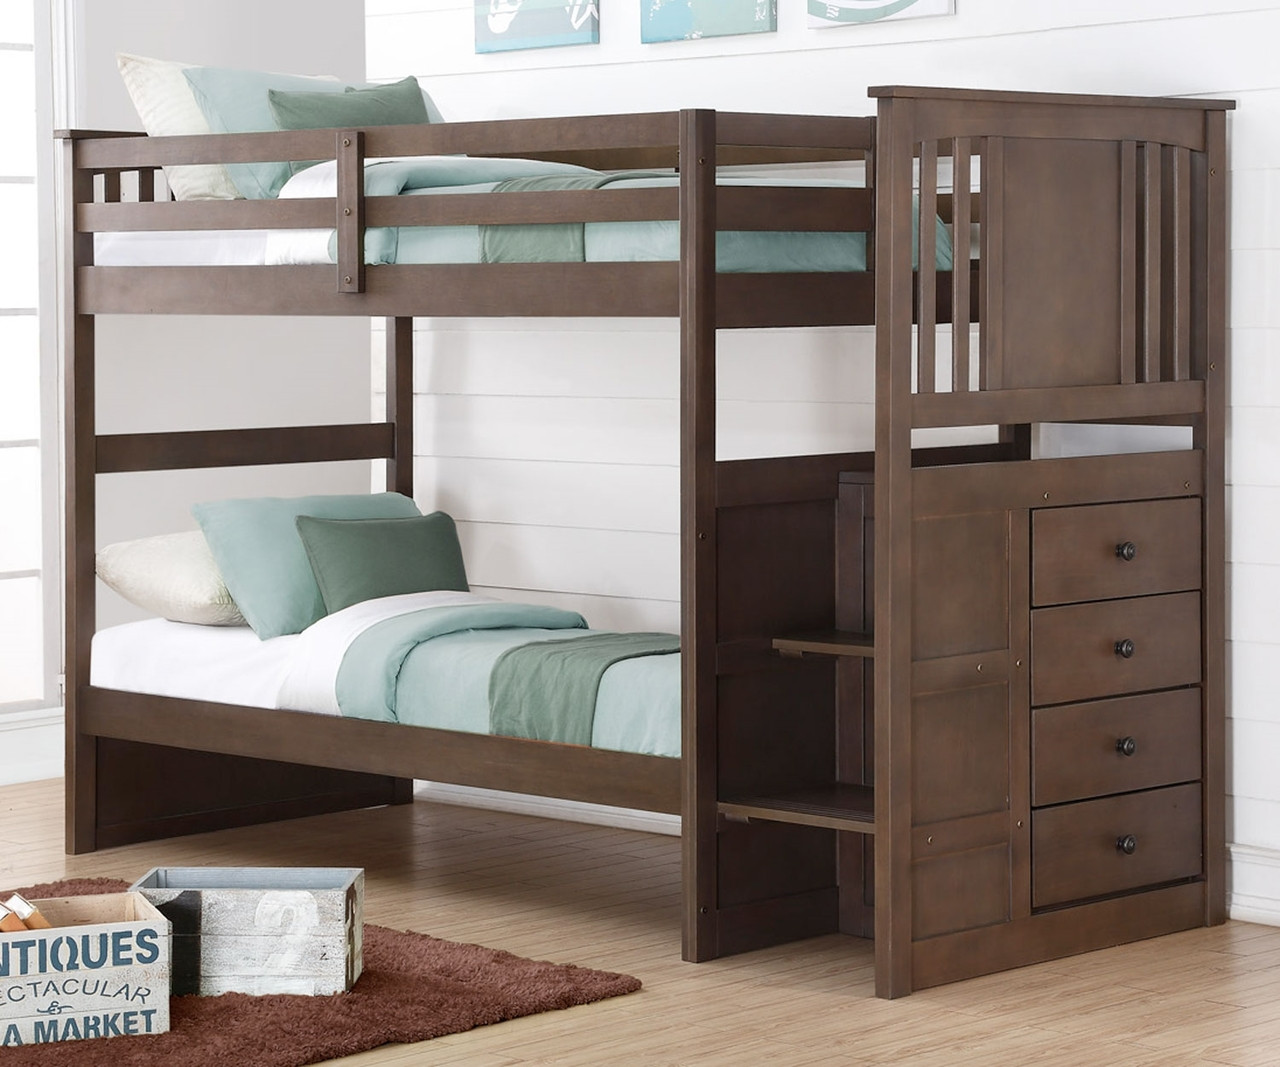 Donco Trading Princeton Stairway Bunk Bed 2204sg Solid Wood Bunk